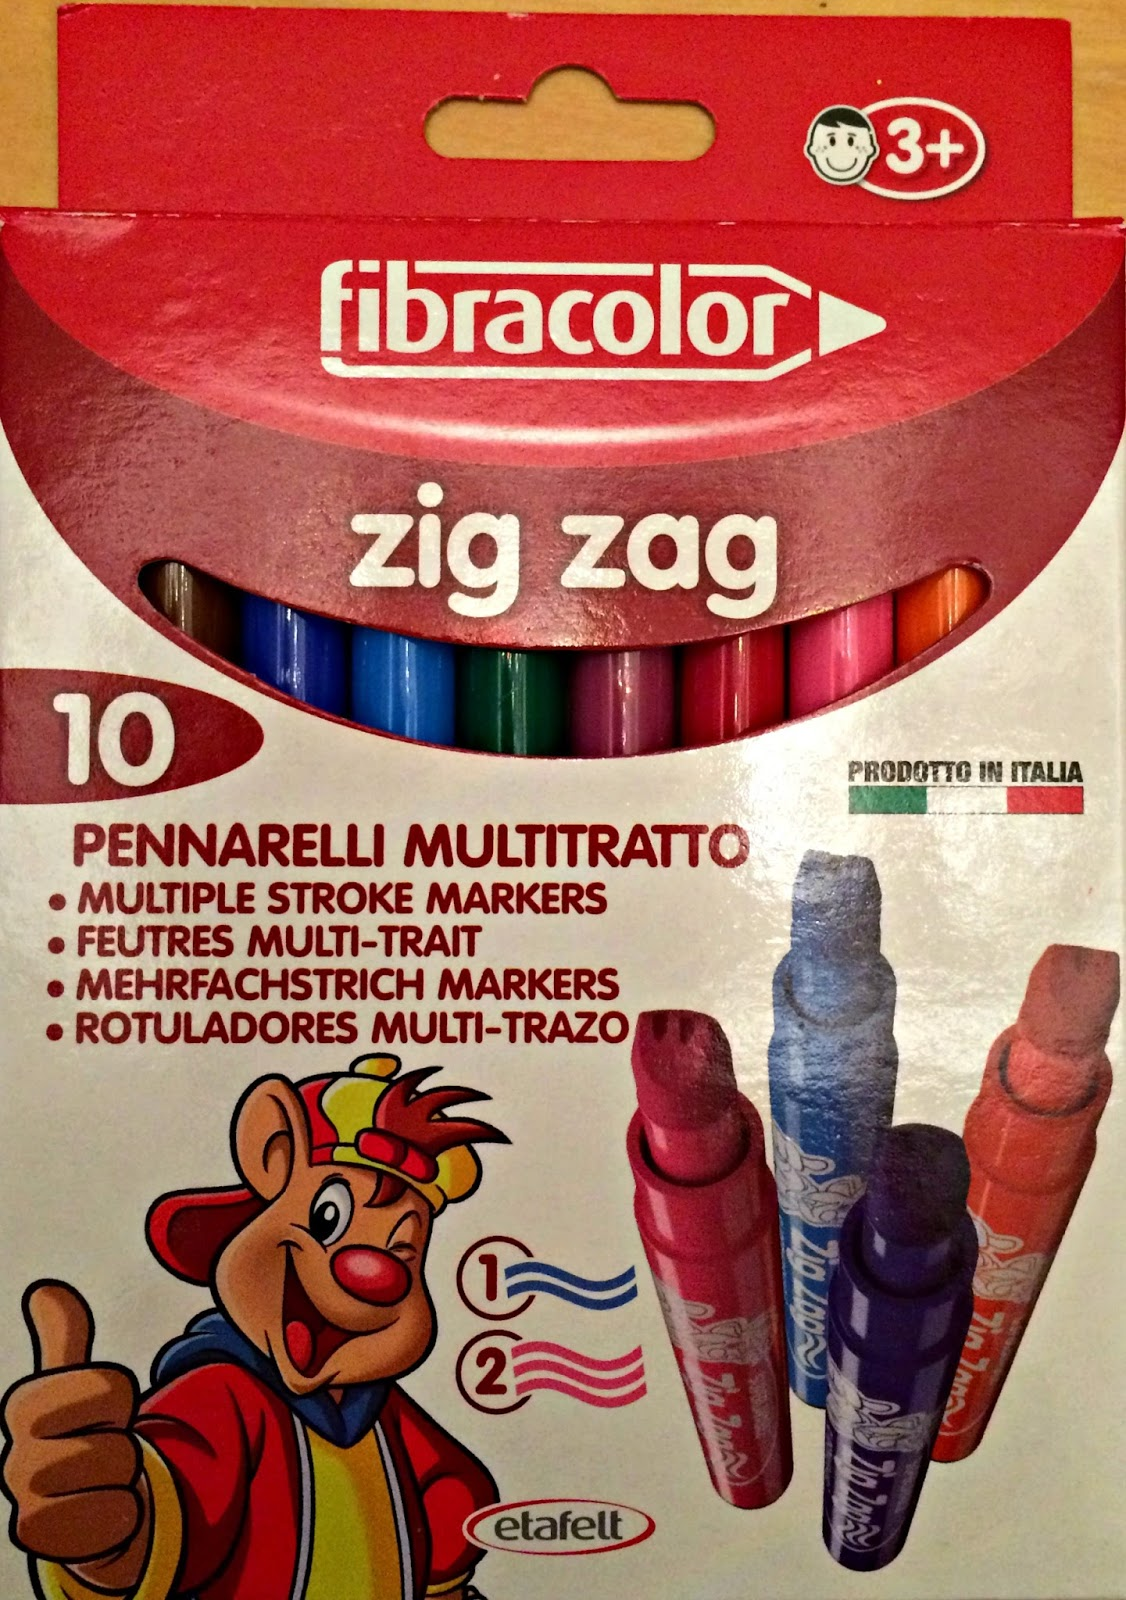 Fibracolor Zig Zag Markers from Idealworld.tv